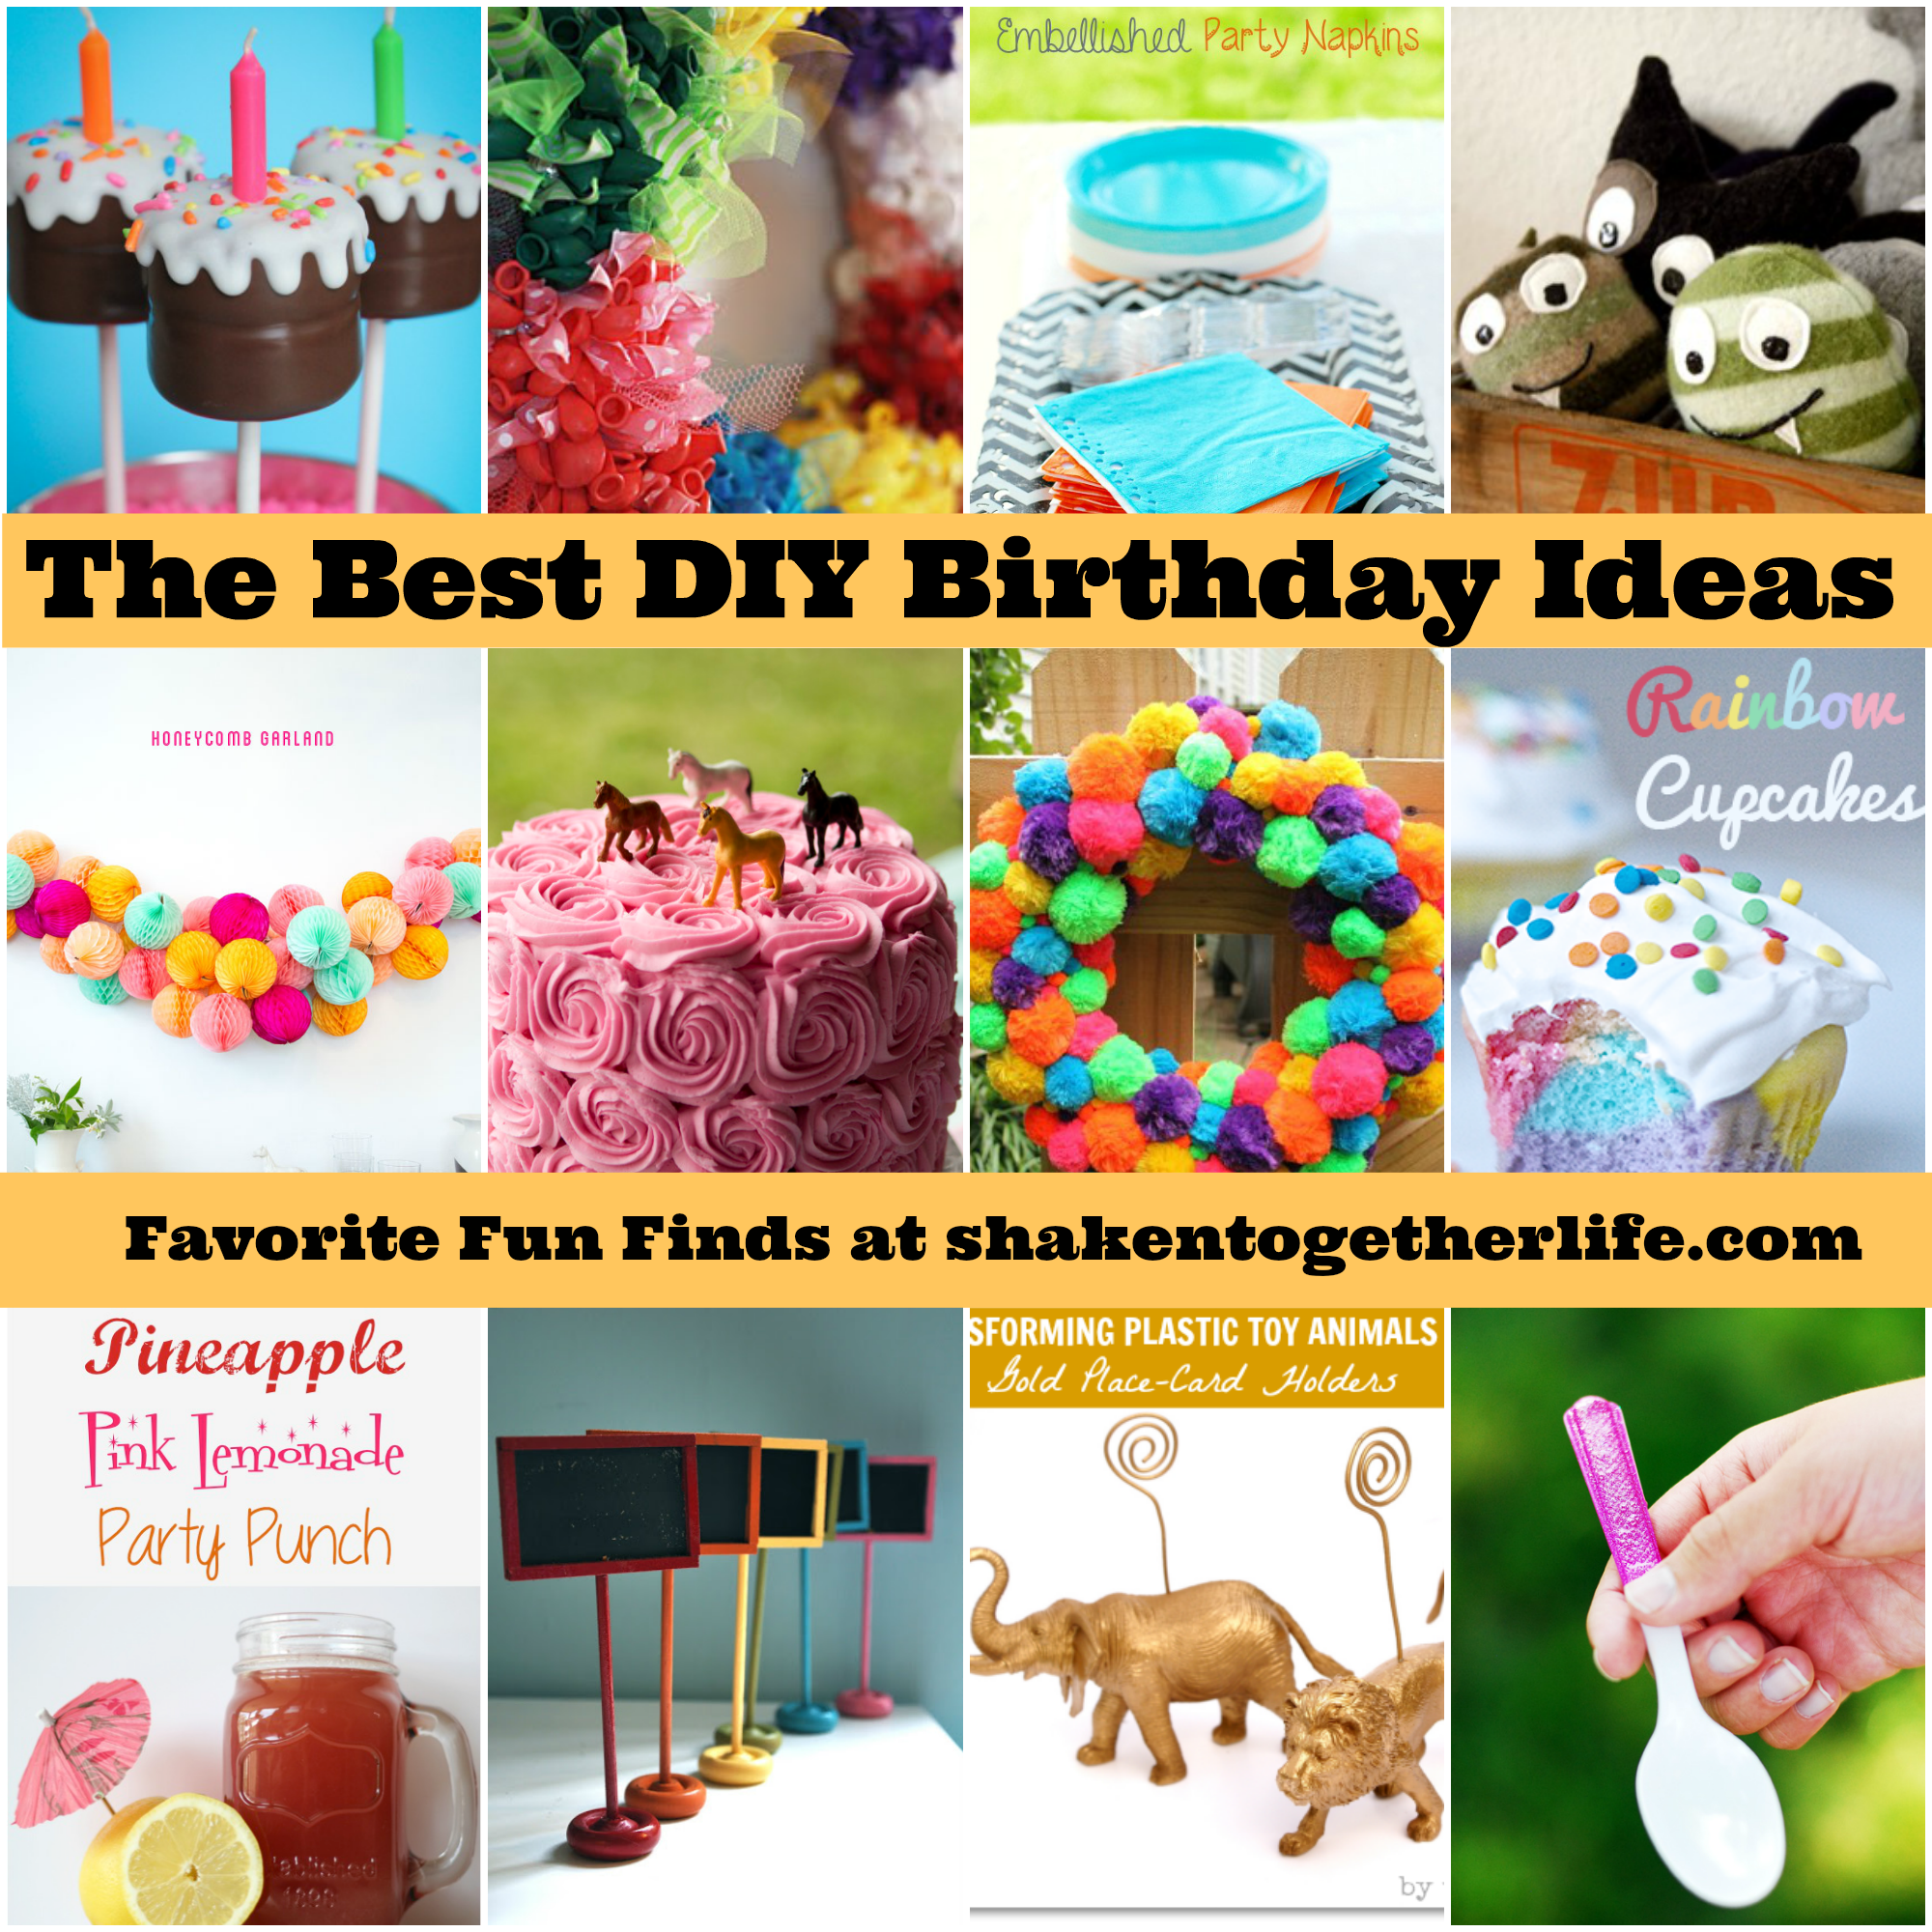 The Best DIY Birthday Ideas At Shakentogetherlife